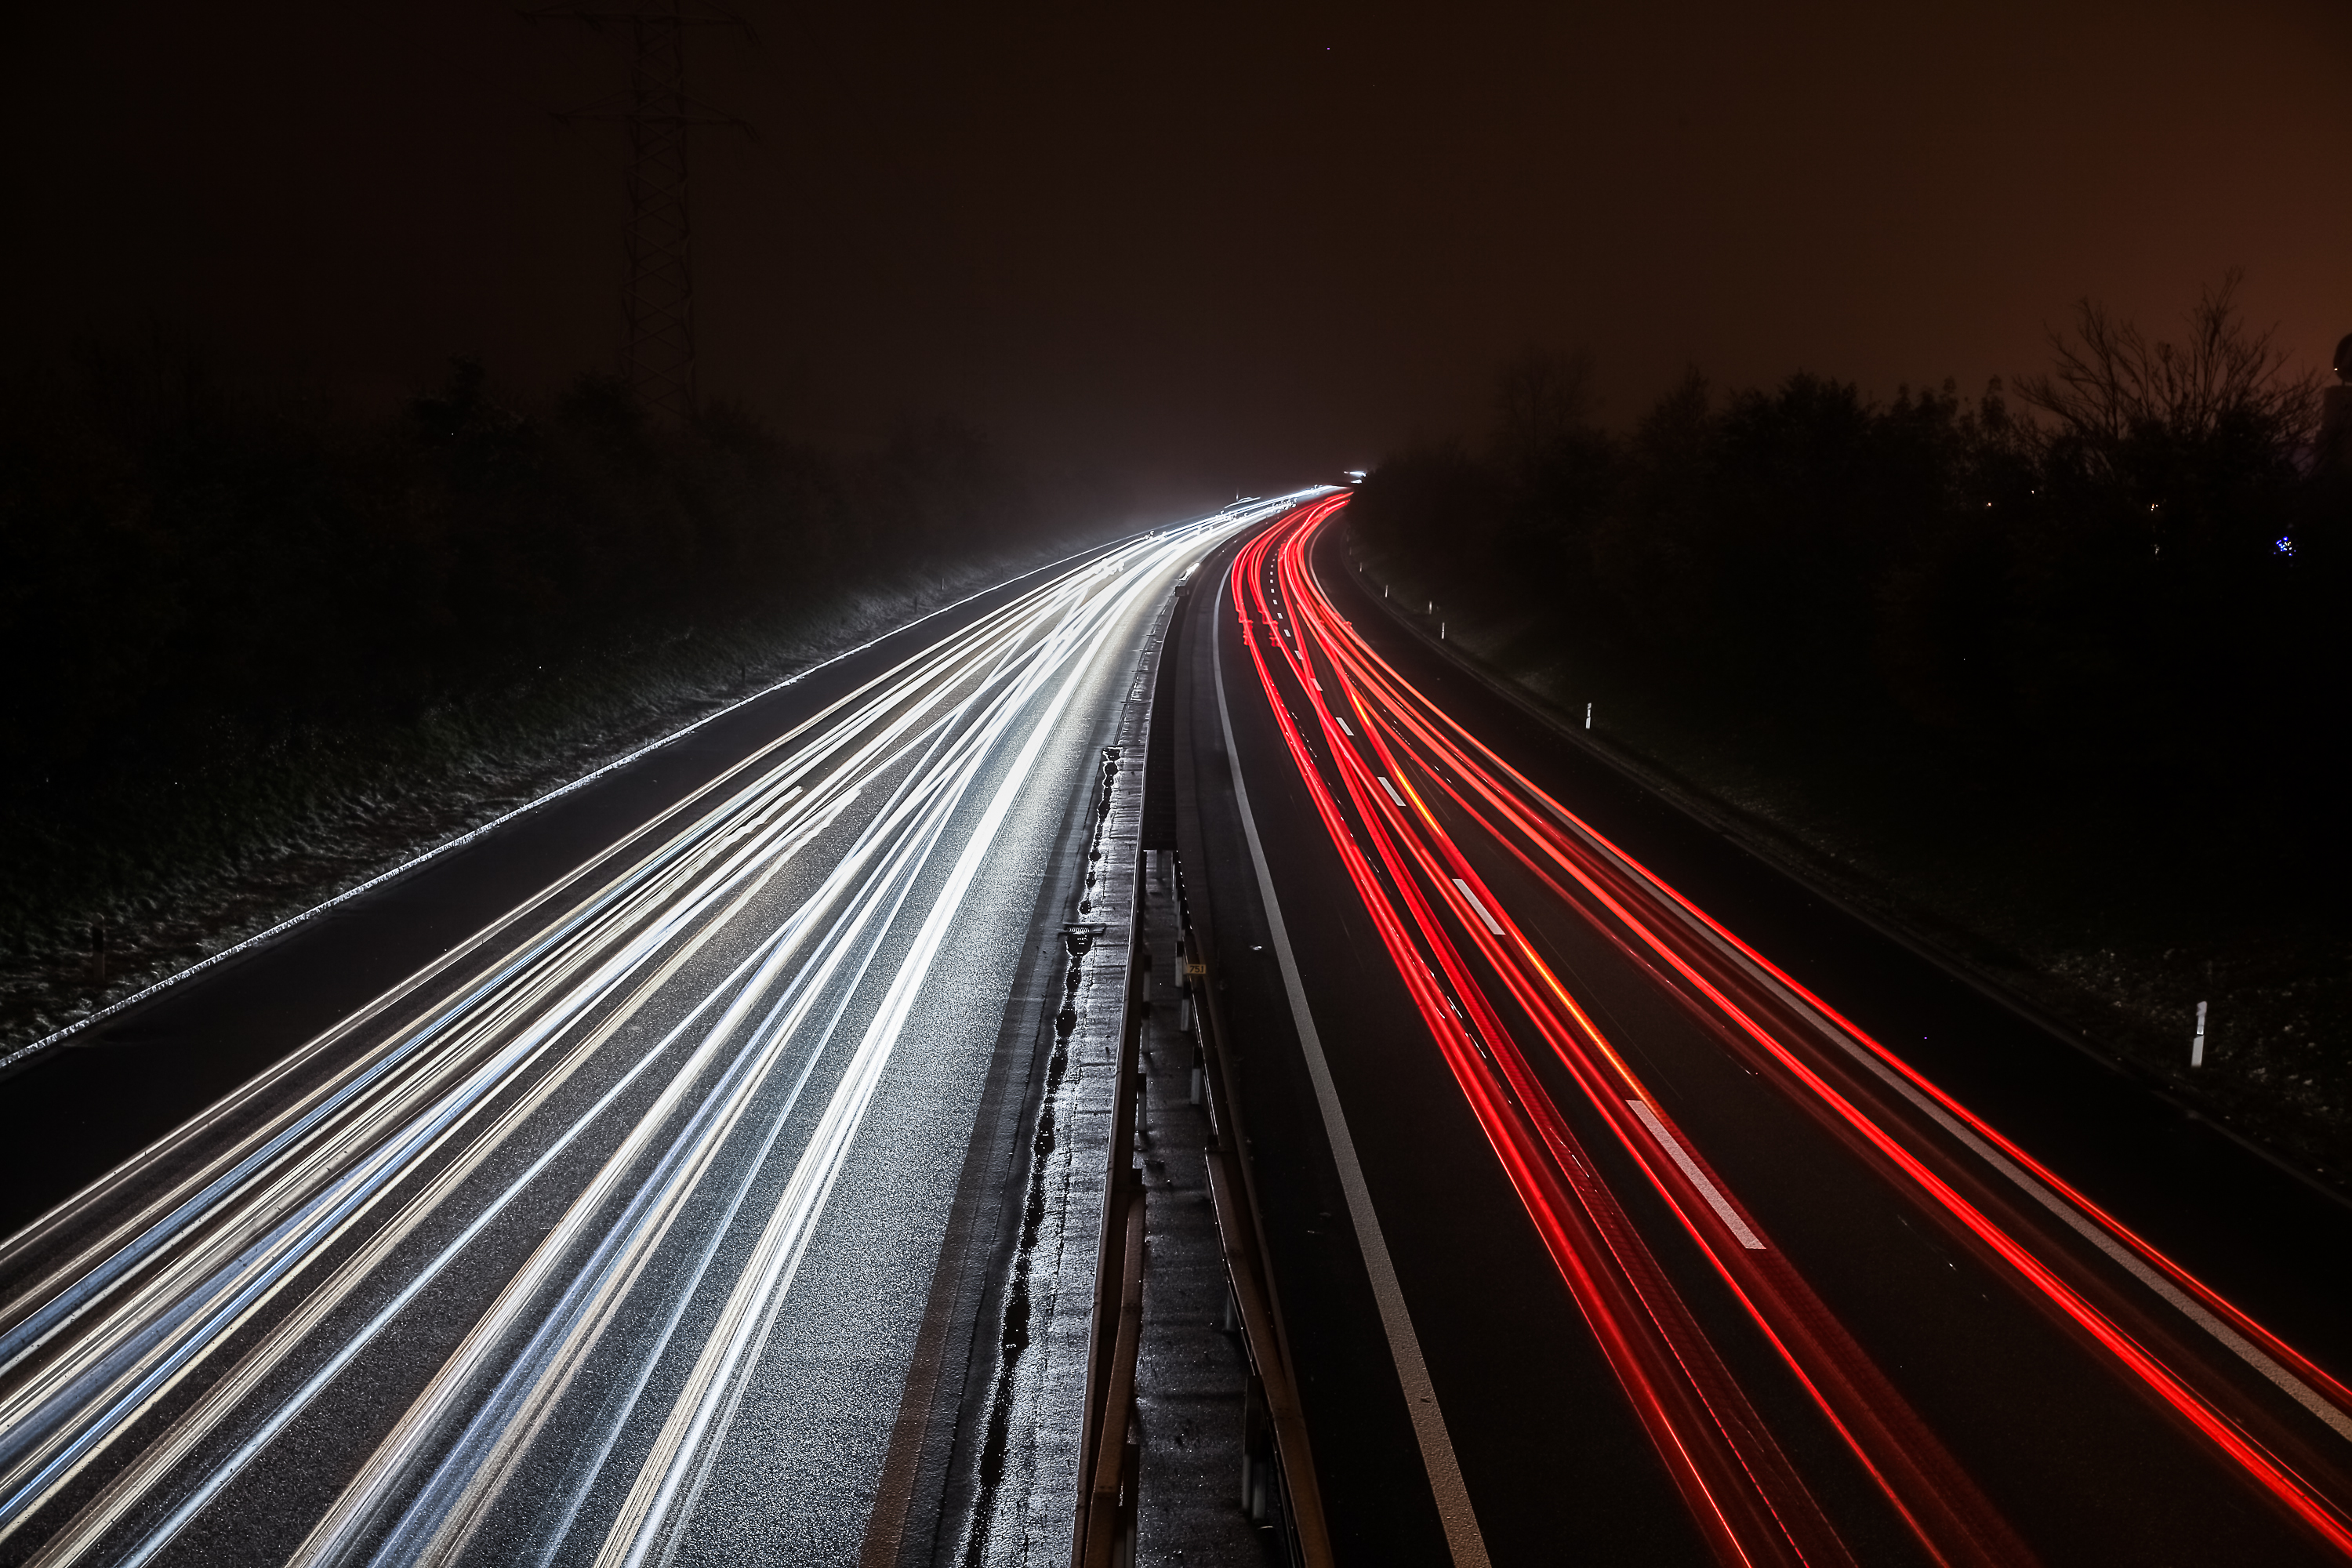 lighttrails by Sanji1989